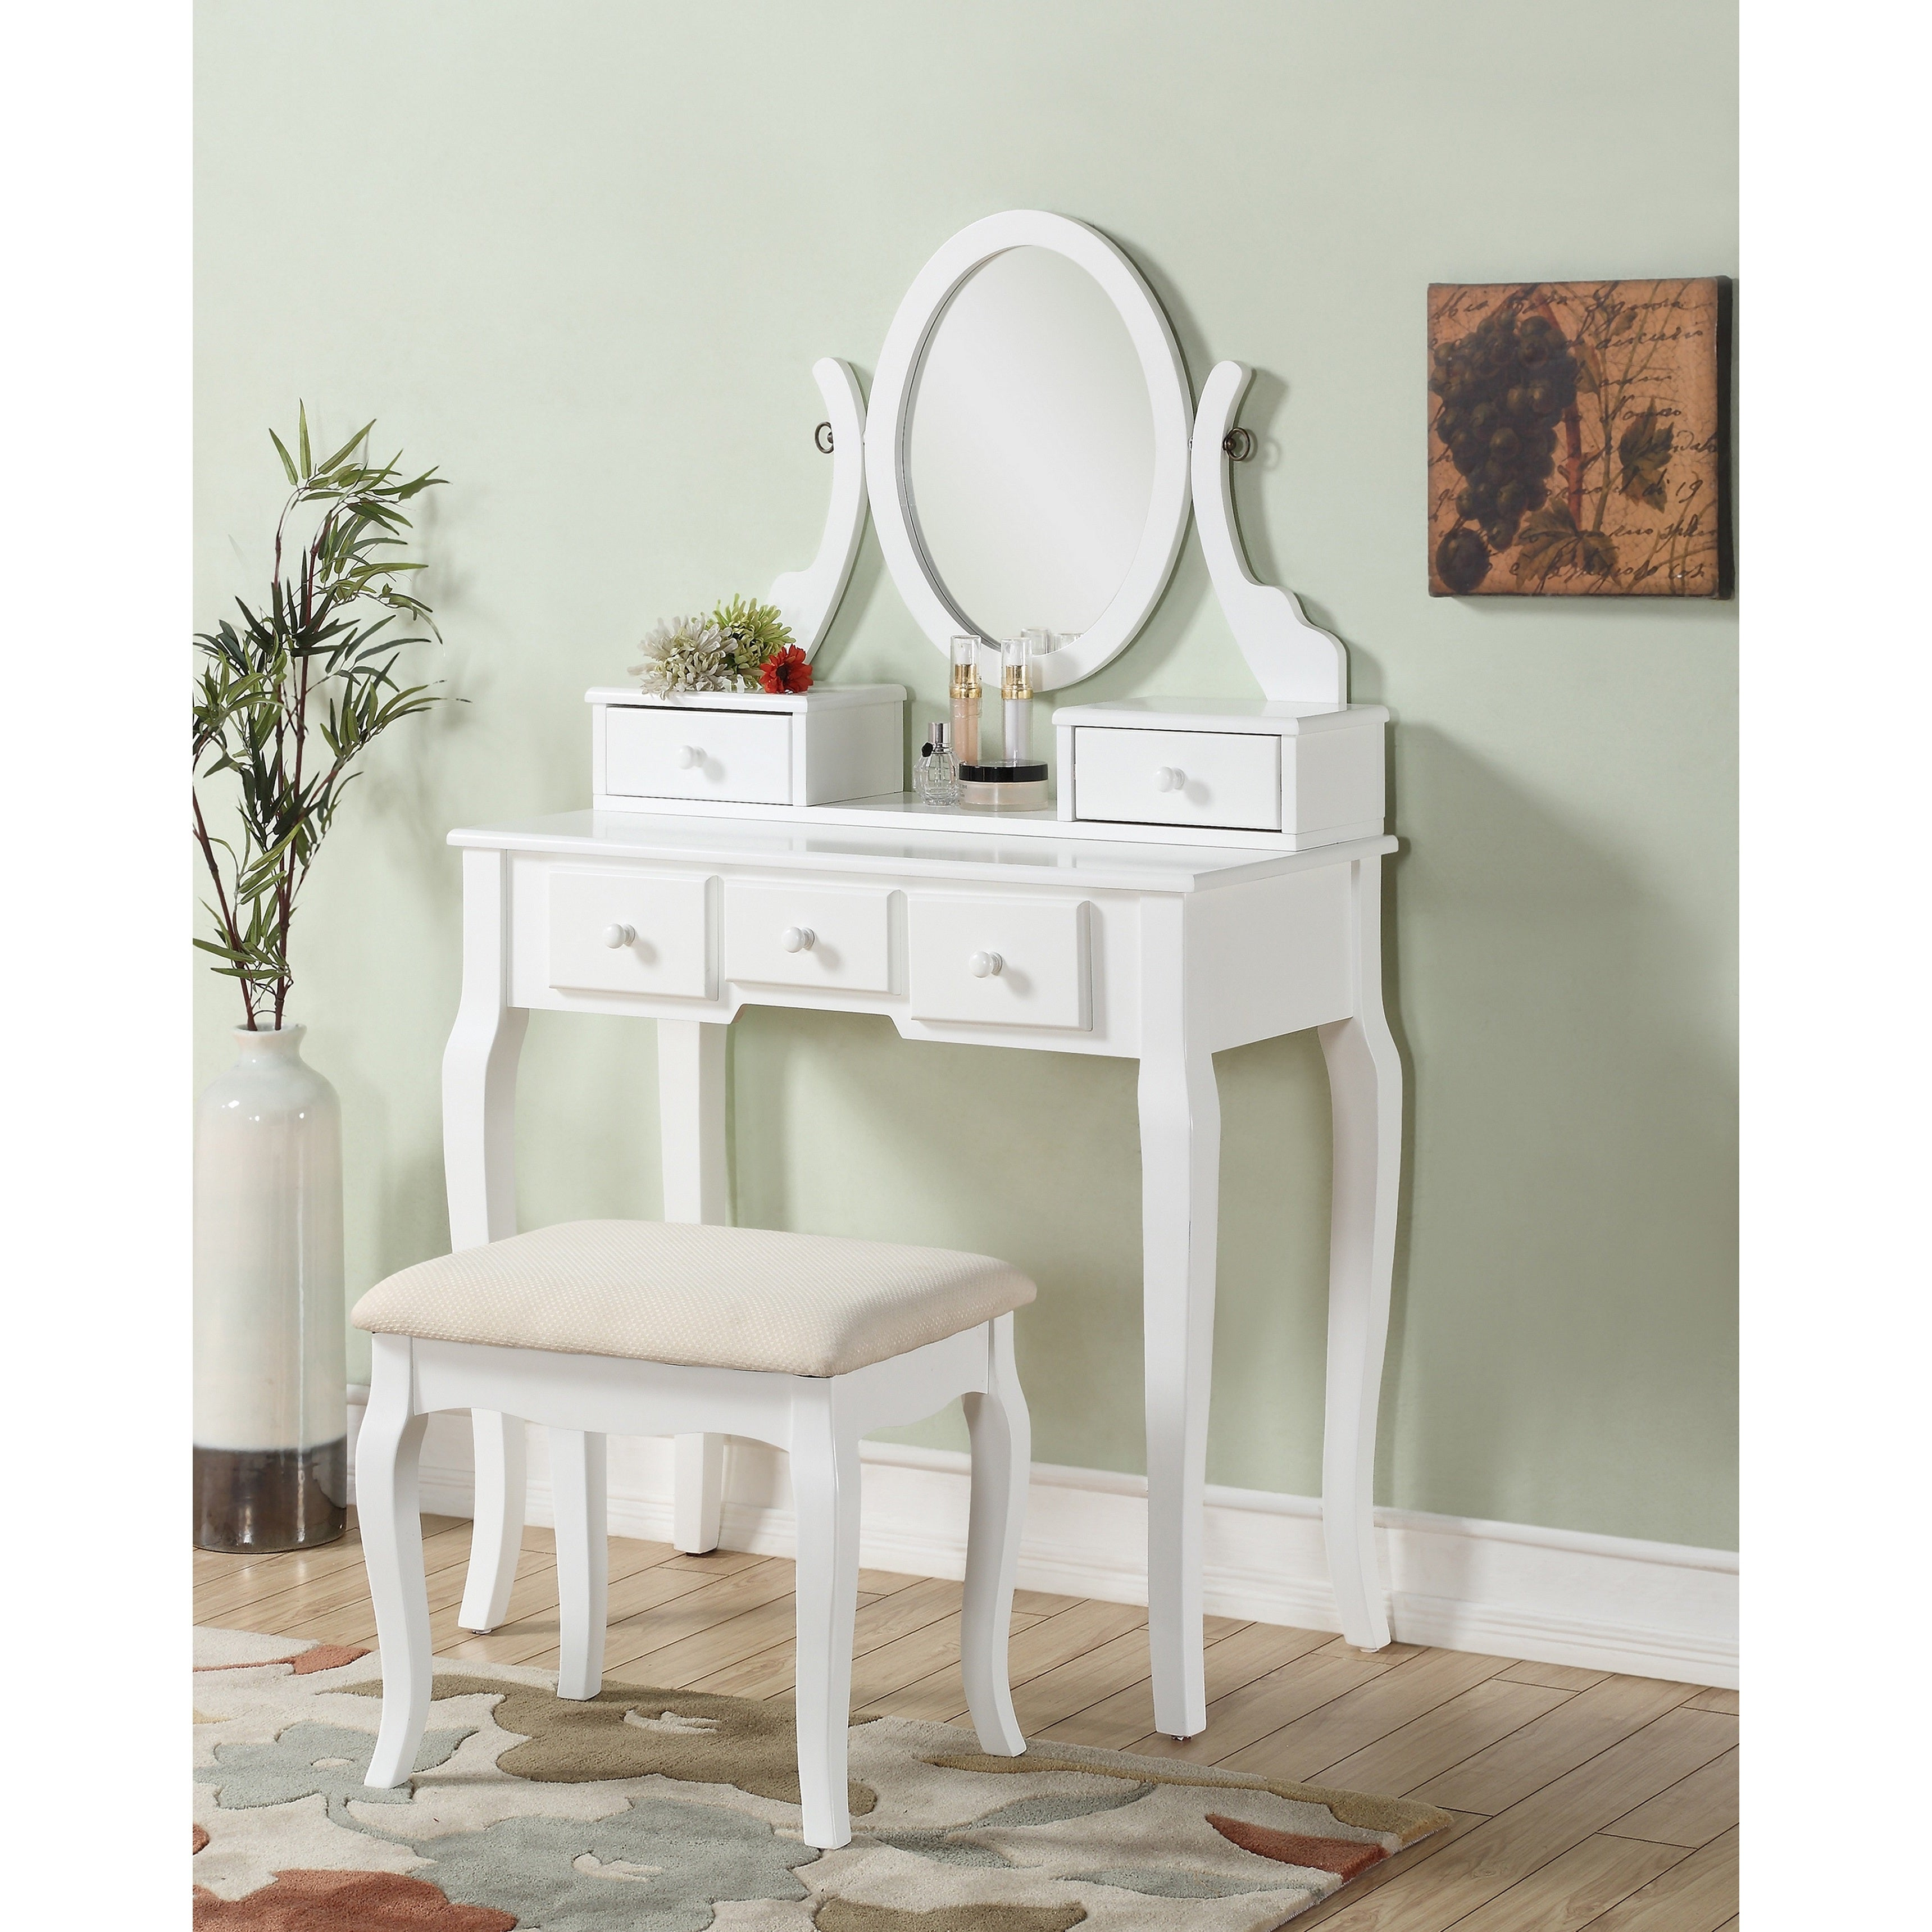 furniture glass table vanity oriental set pin mirror blossom stool chinese with dressing top